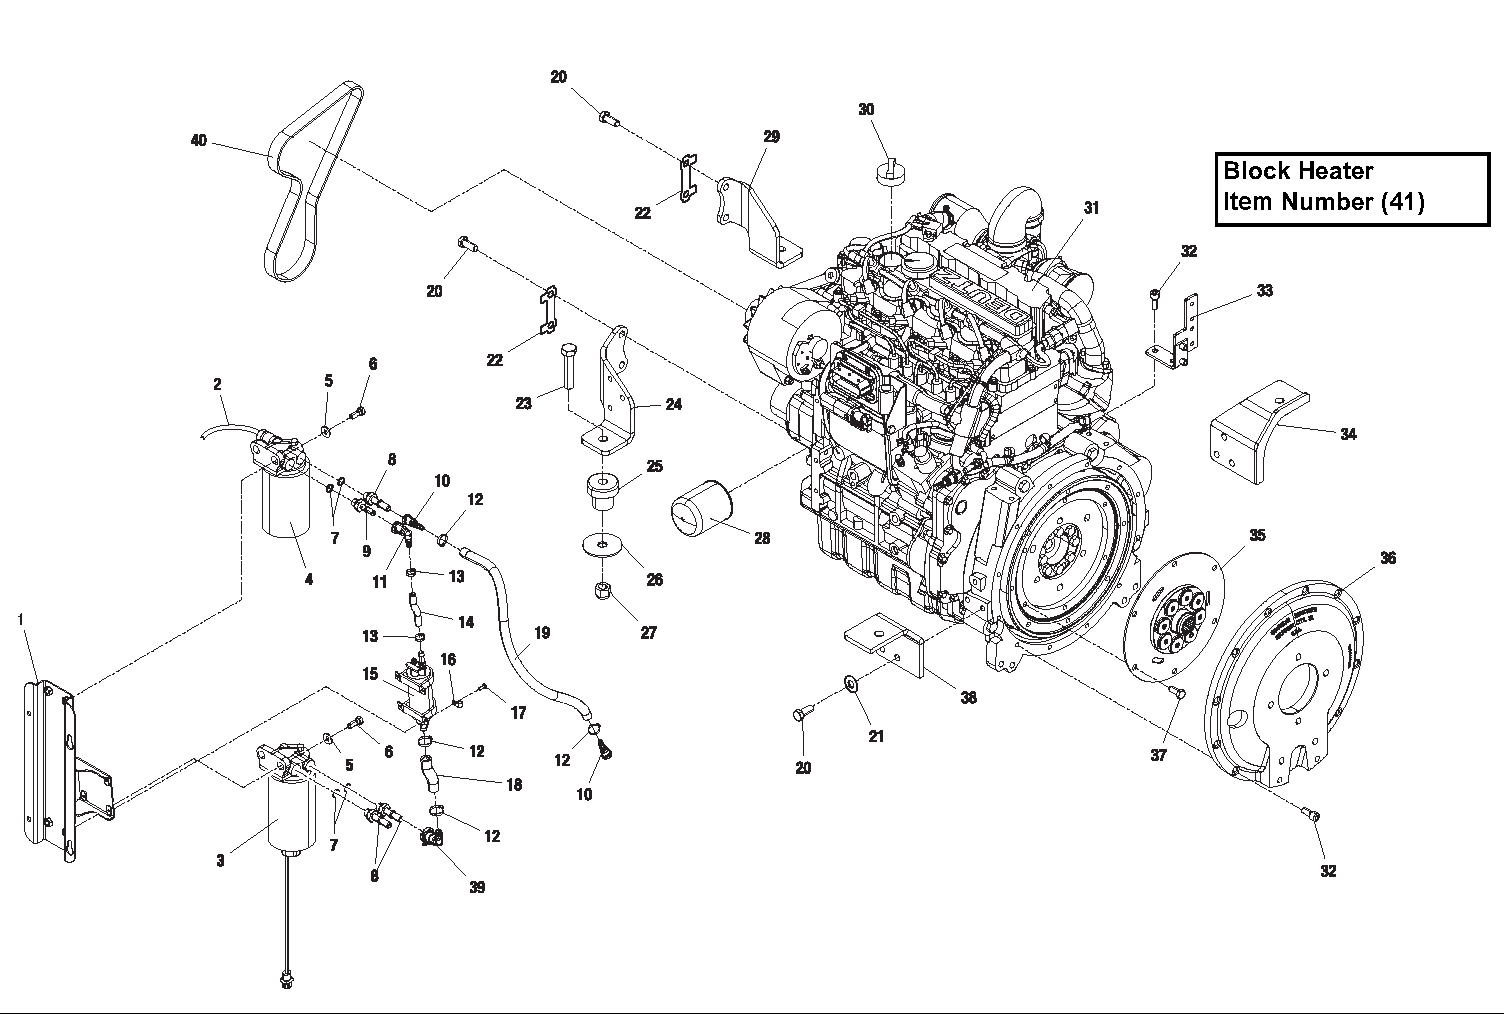 Diagram 2-2A Diesel Engine